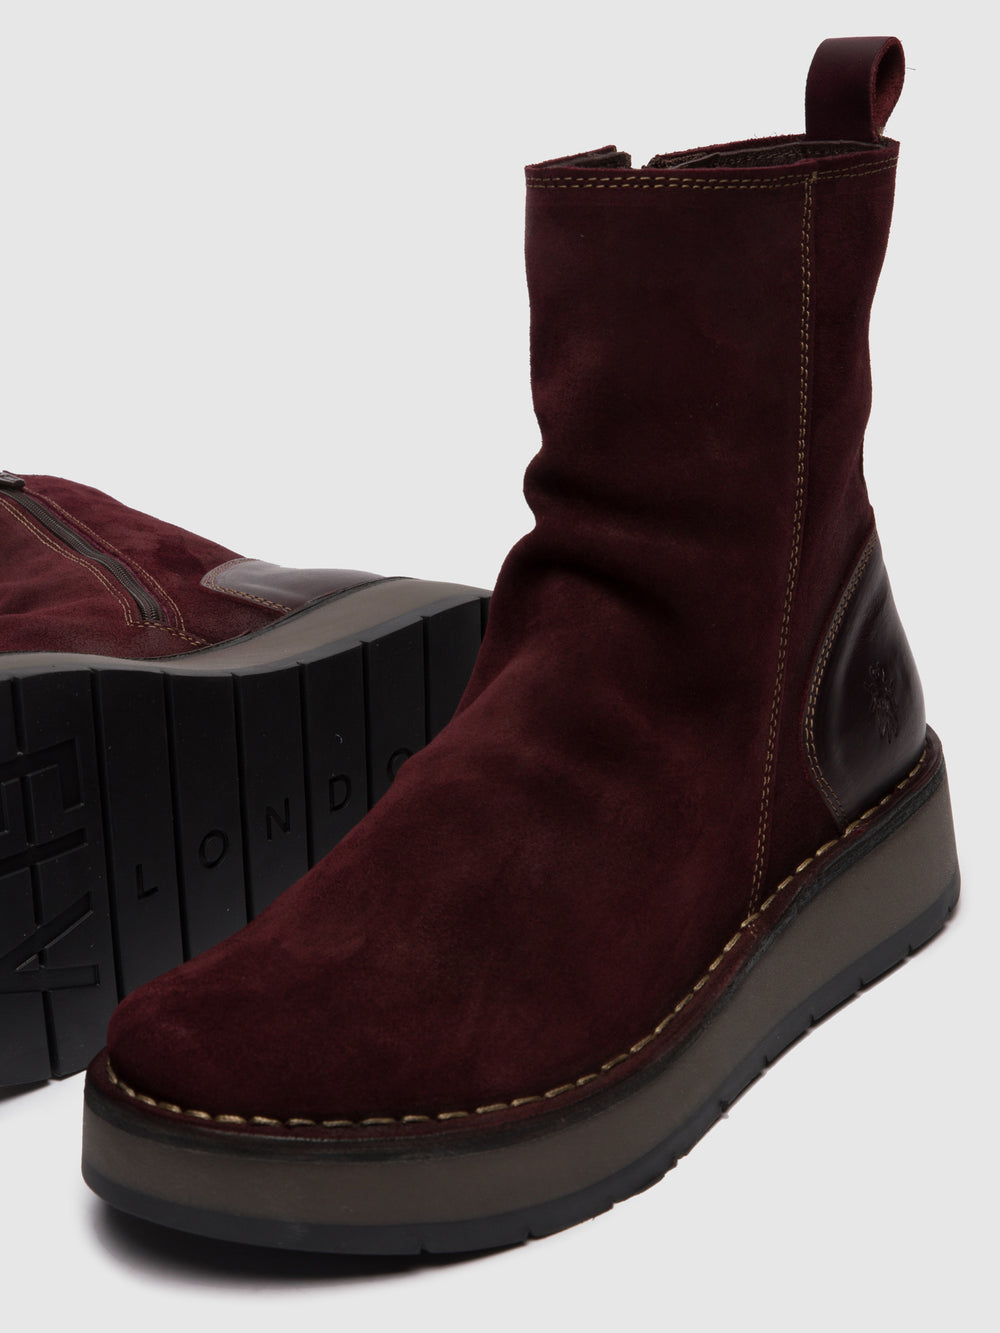 Zip Up Ankle Boots RENO053FLY OILSUEDE/RUG WINE